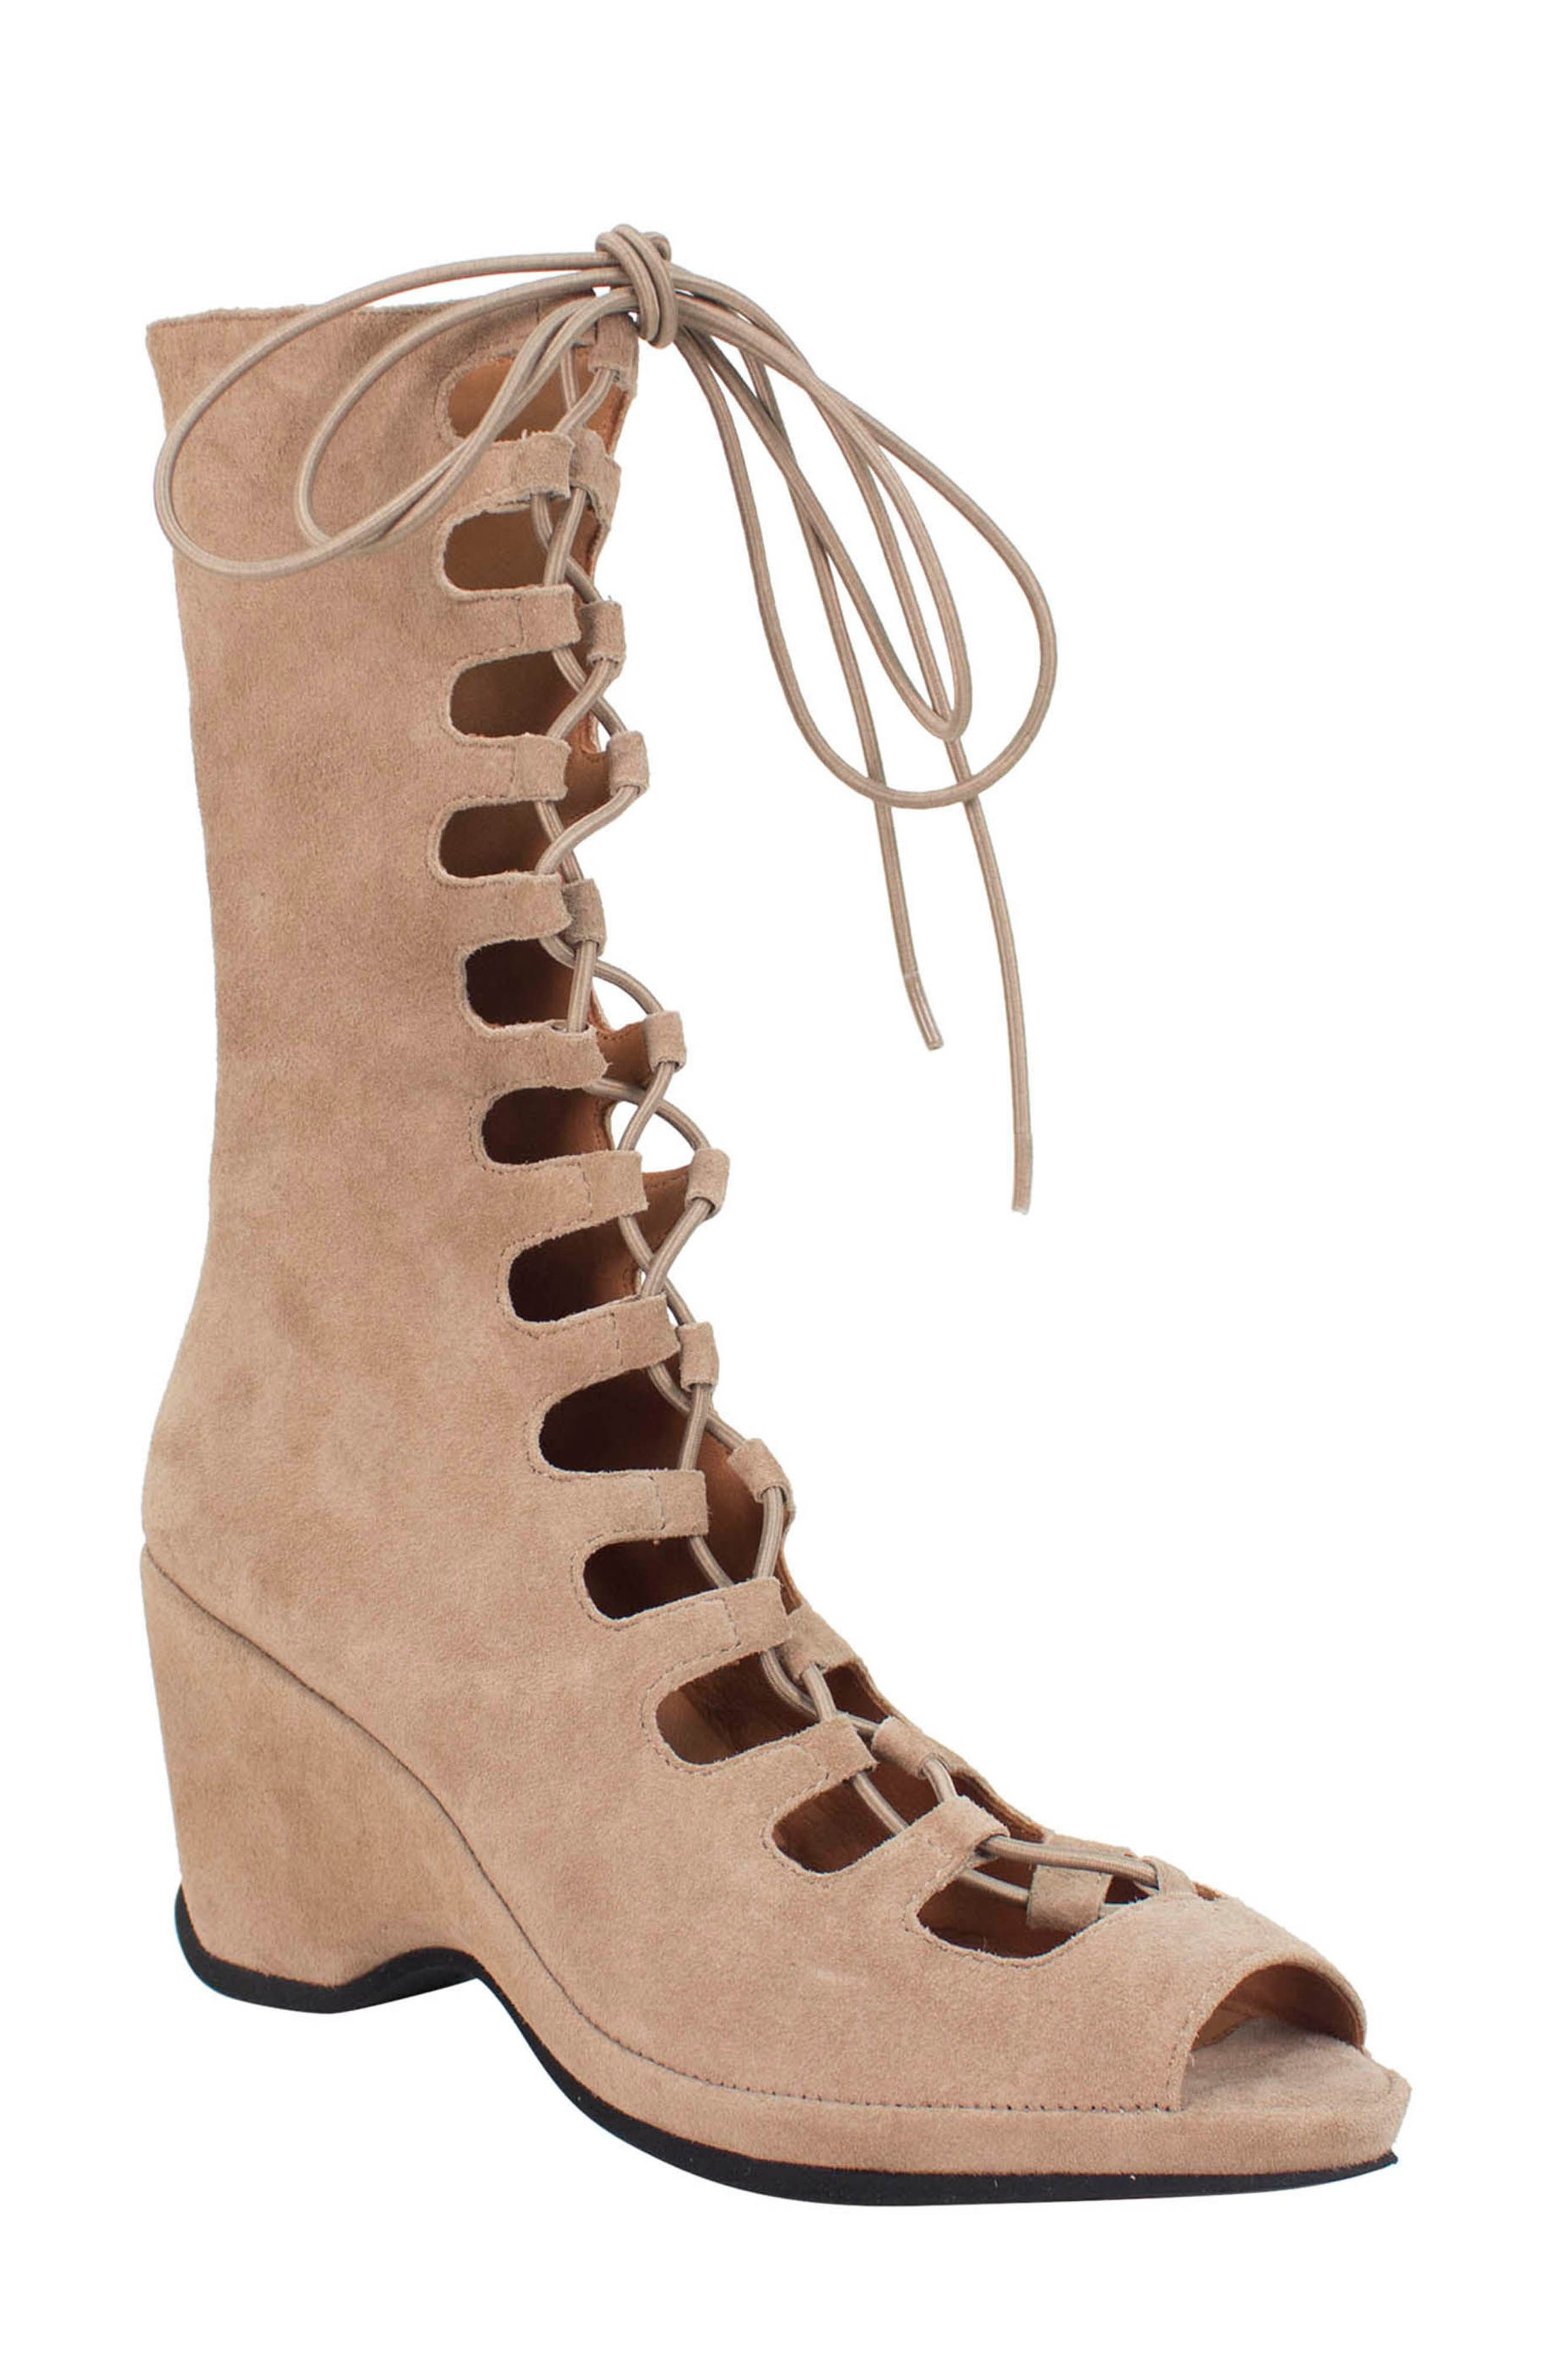 Othello Lace-Up Sandal,                             Main thumbnail 1, color,                             Taupe Suede